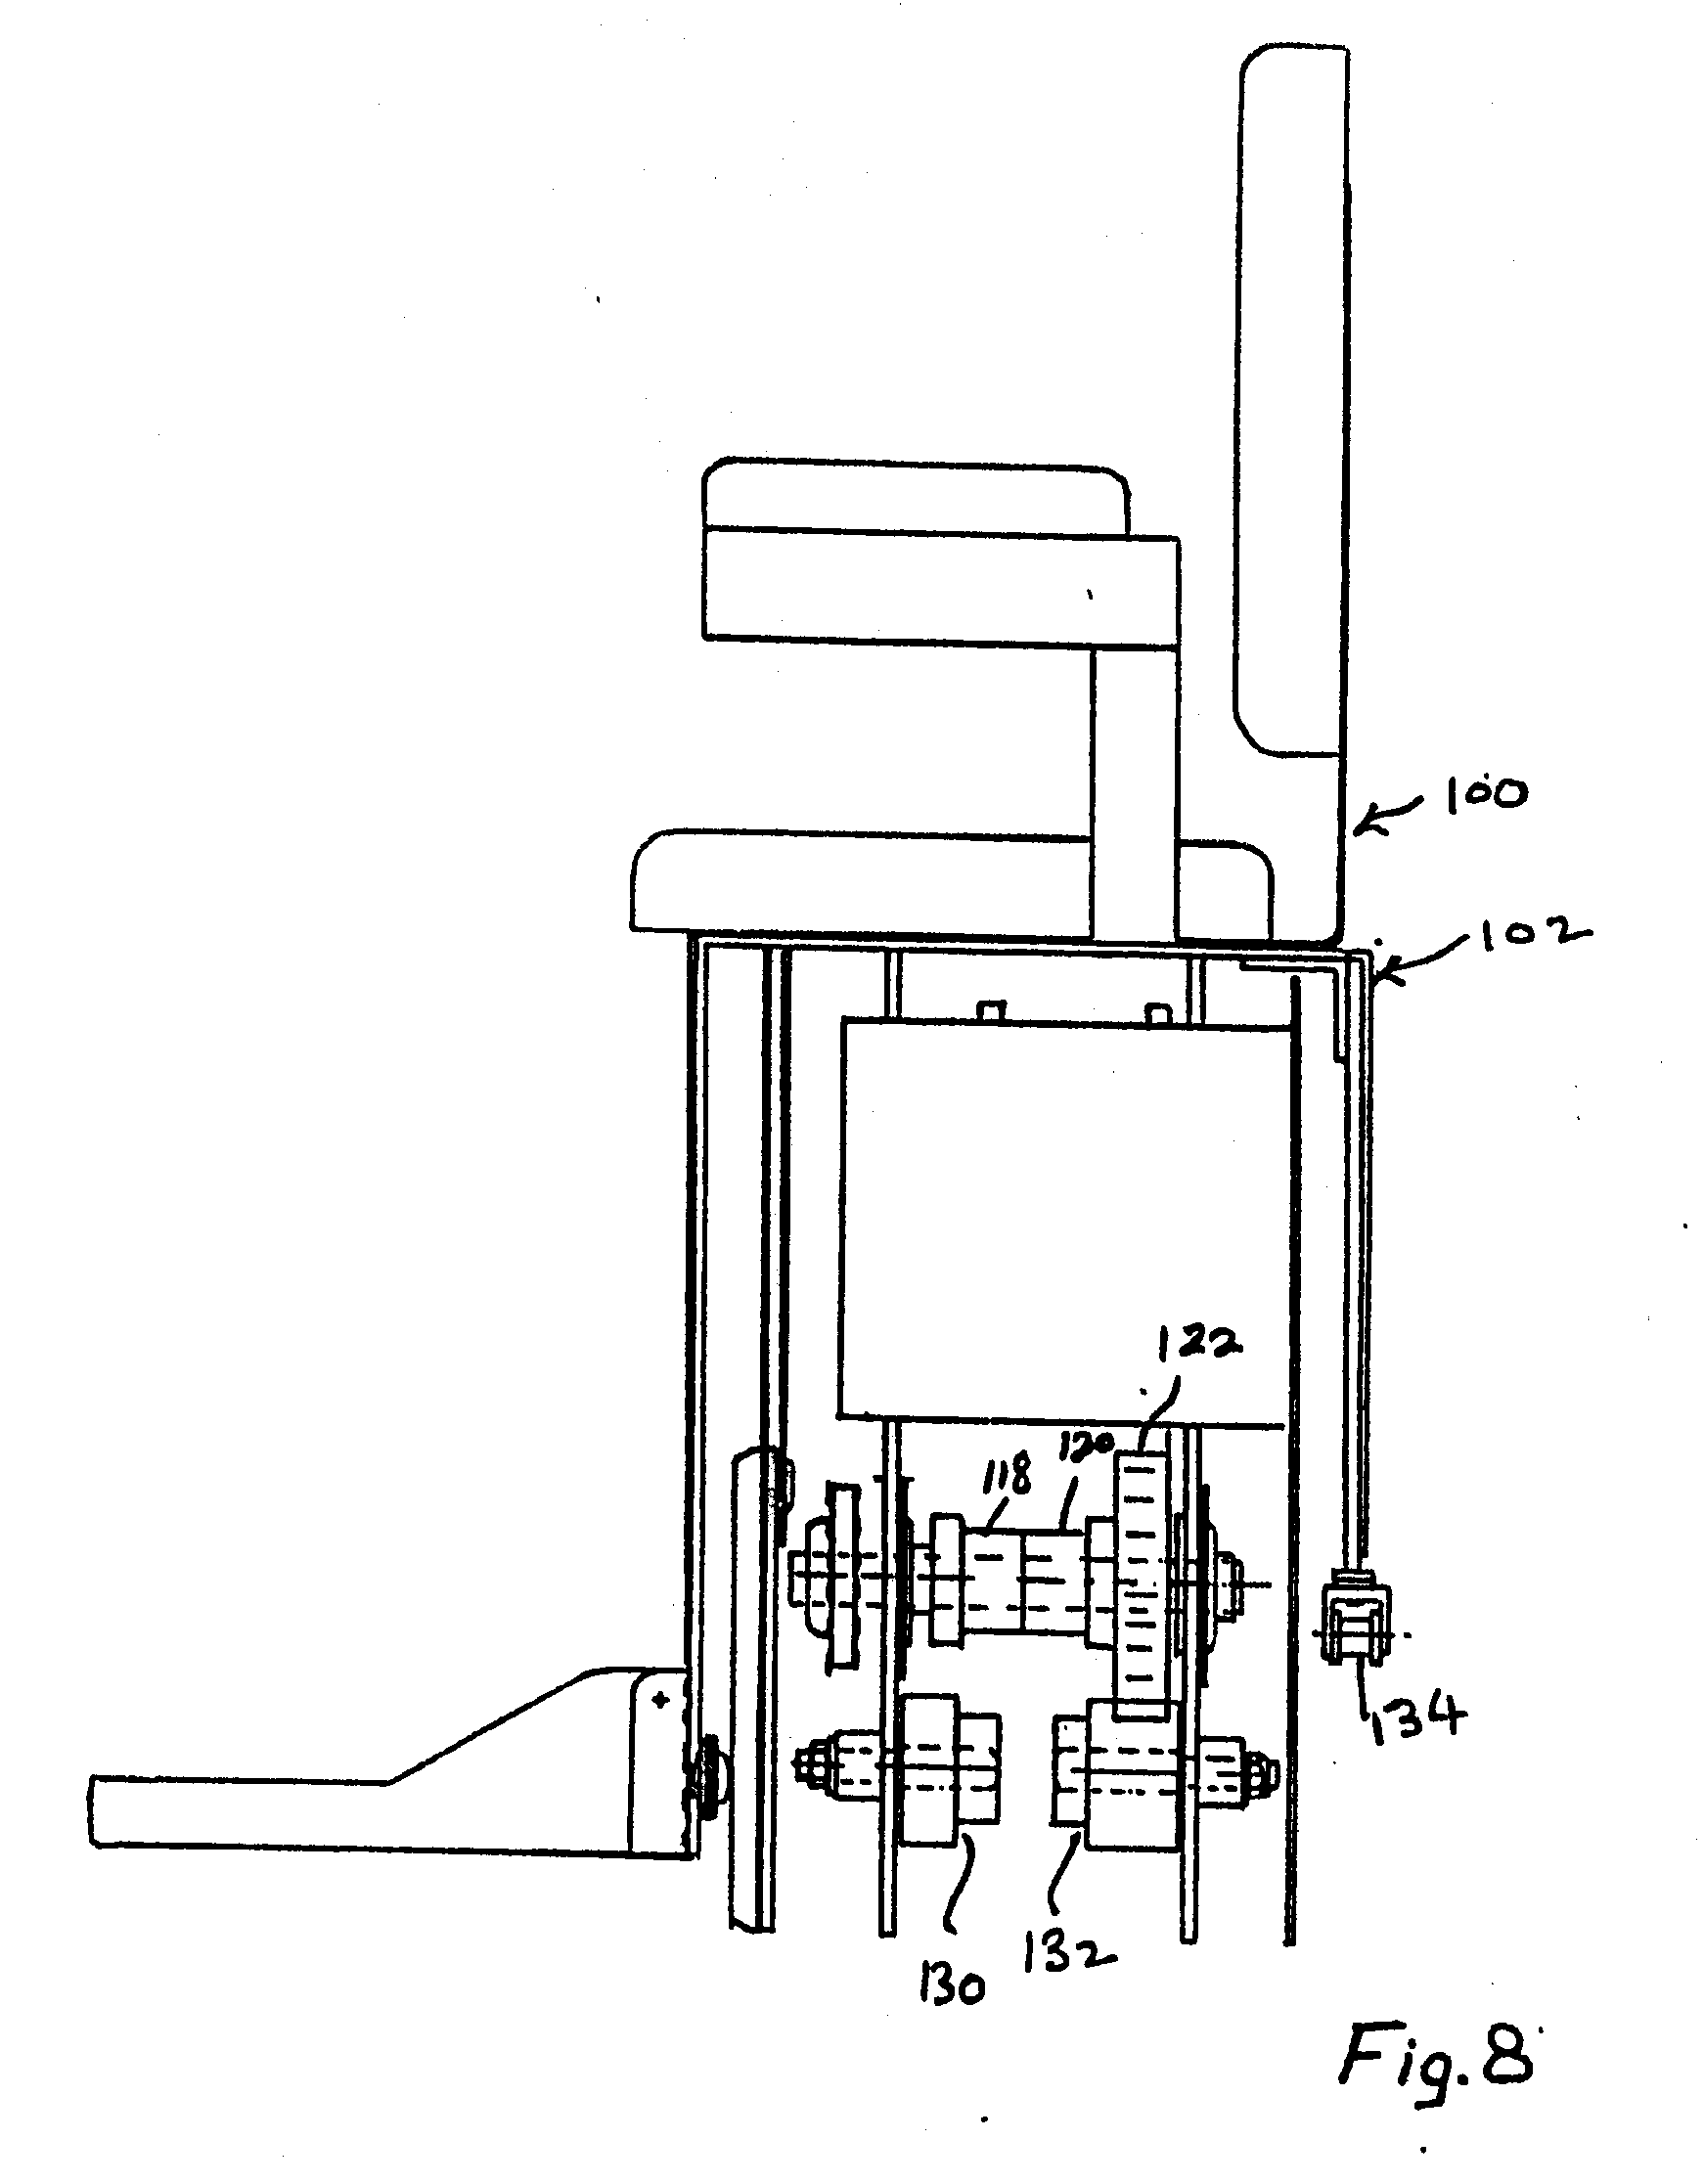 imgf0007 patent ep0137577a1 a stair lift google patents stannah 260 wiring diagram at fashall.co